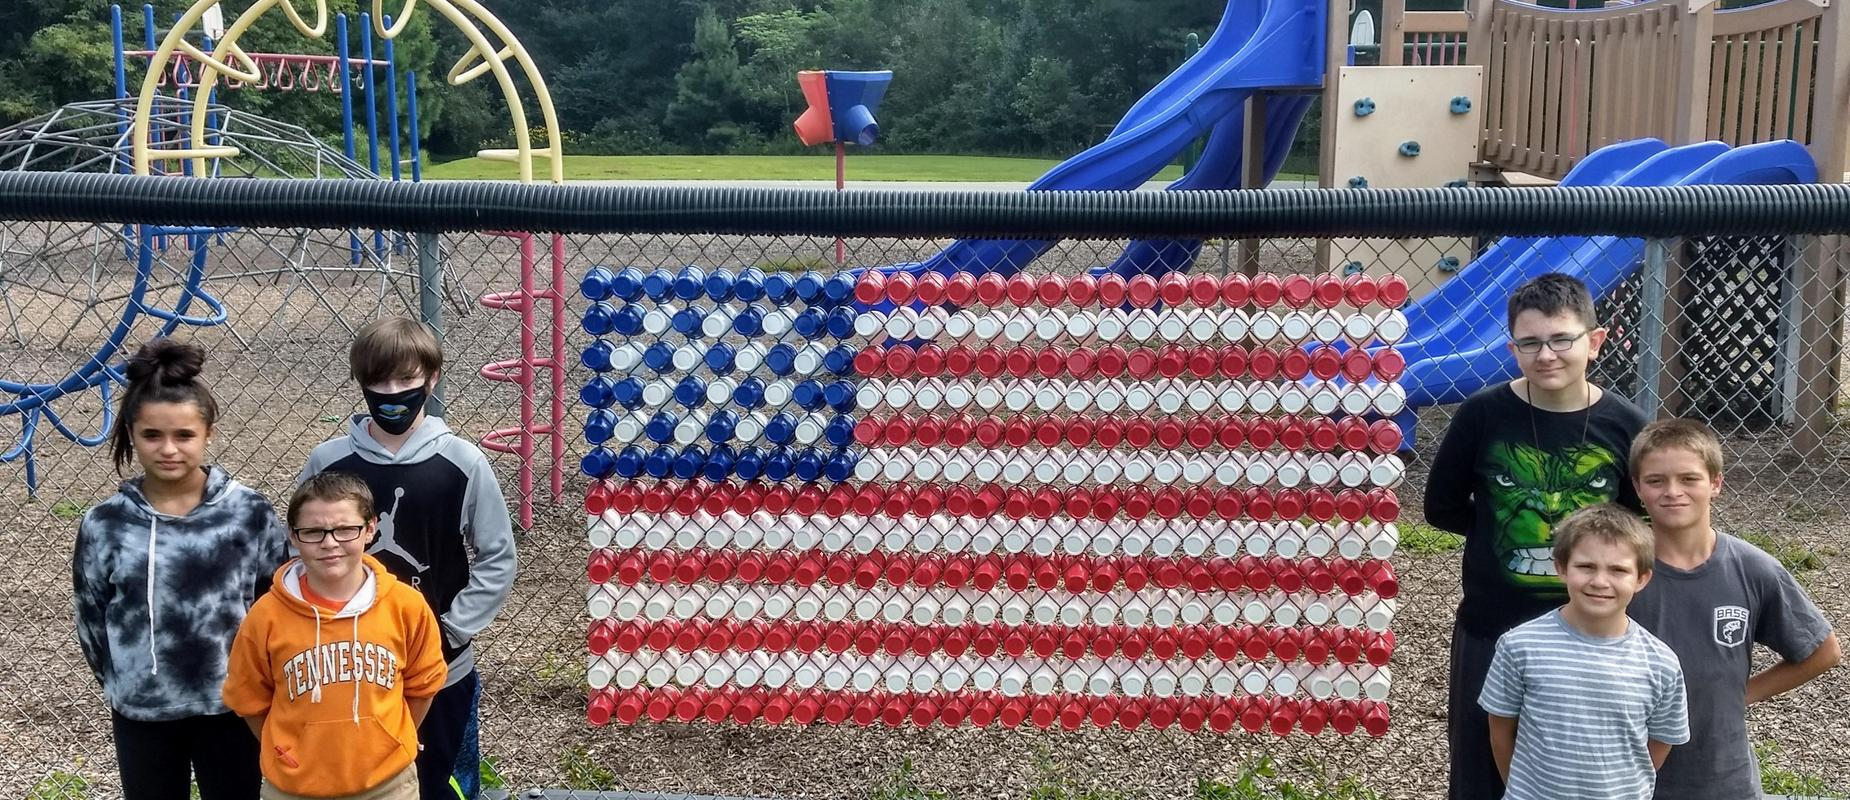 students made an american flag out of plastic cups on the playground fence